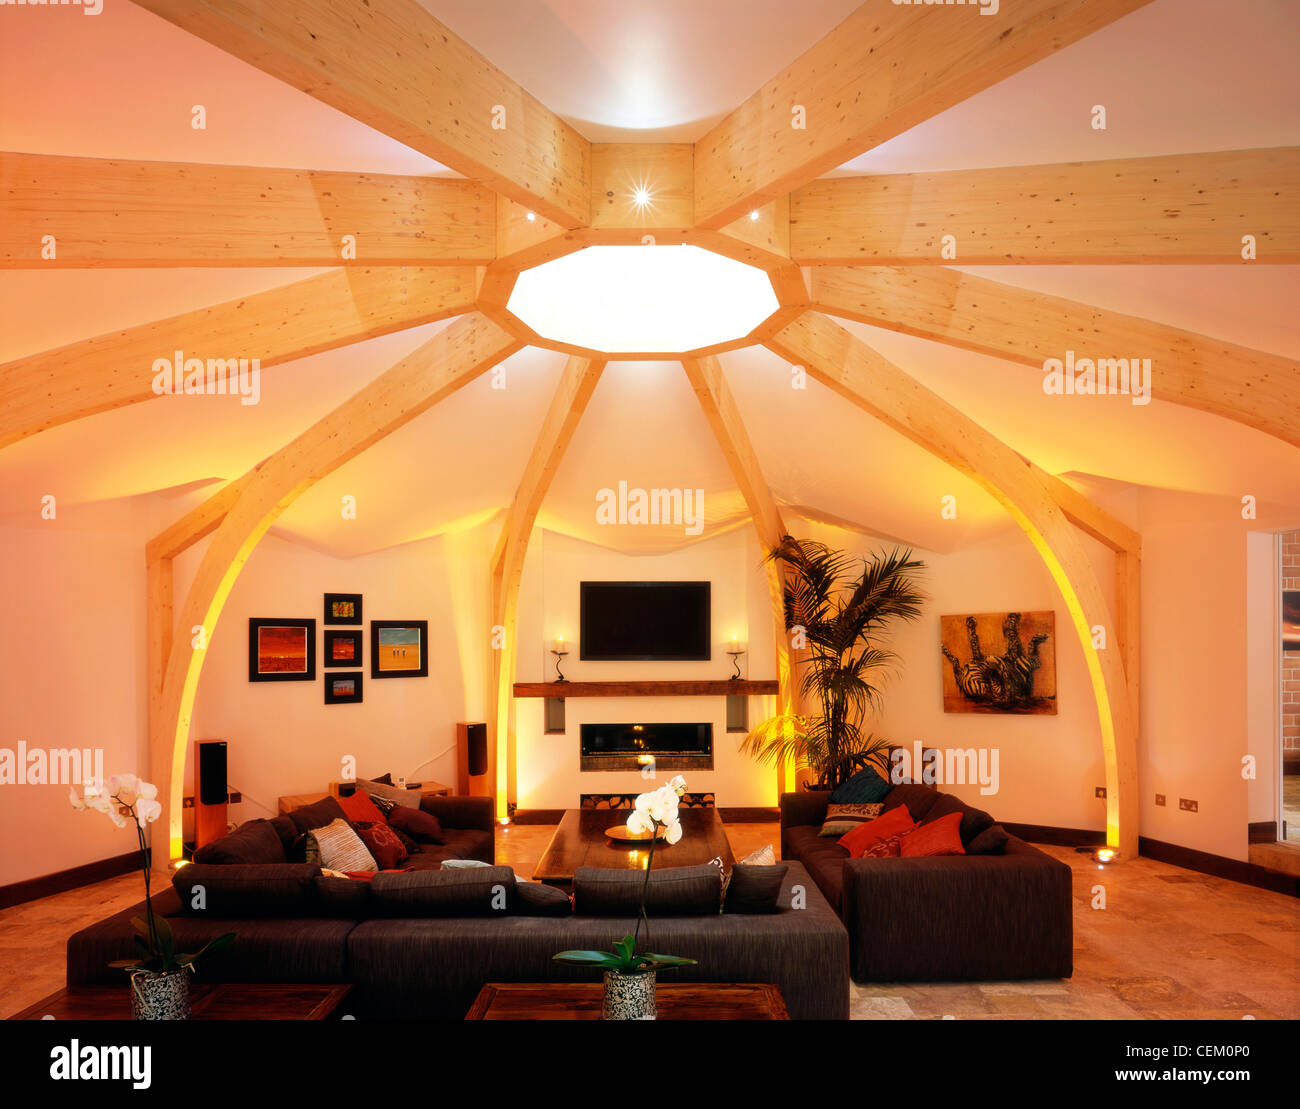 The Interiof Decagon House In Oxford UK Showing Living Room